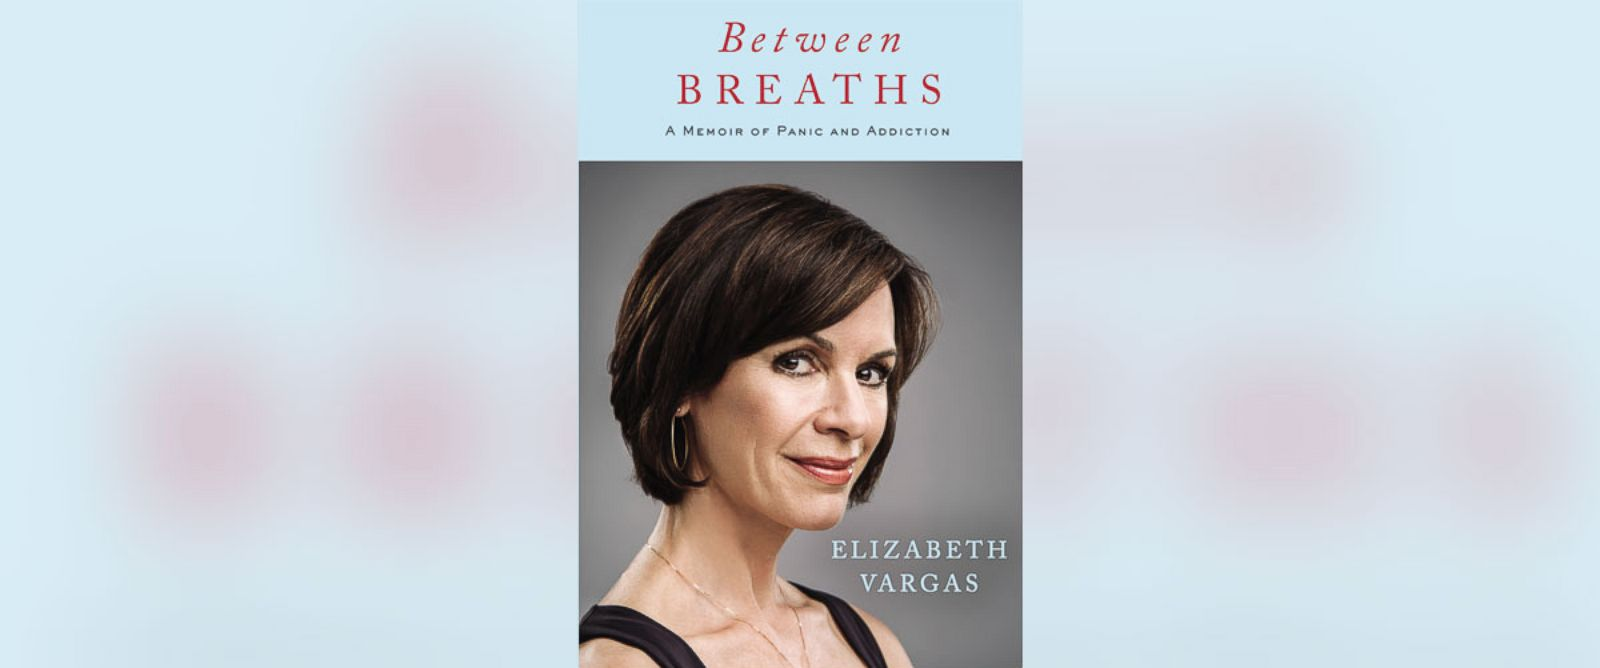 """PHOTO: The book cover for """"Between Breaths: A Memoir of Pain and Addiction"""" by Elizabeth Vargas."""